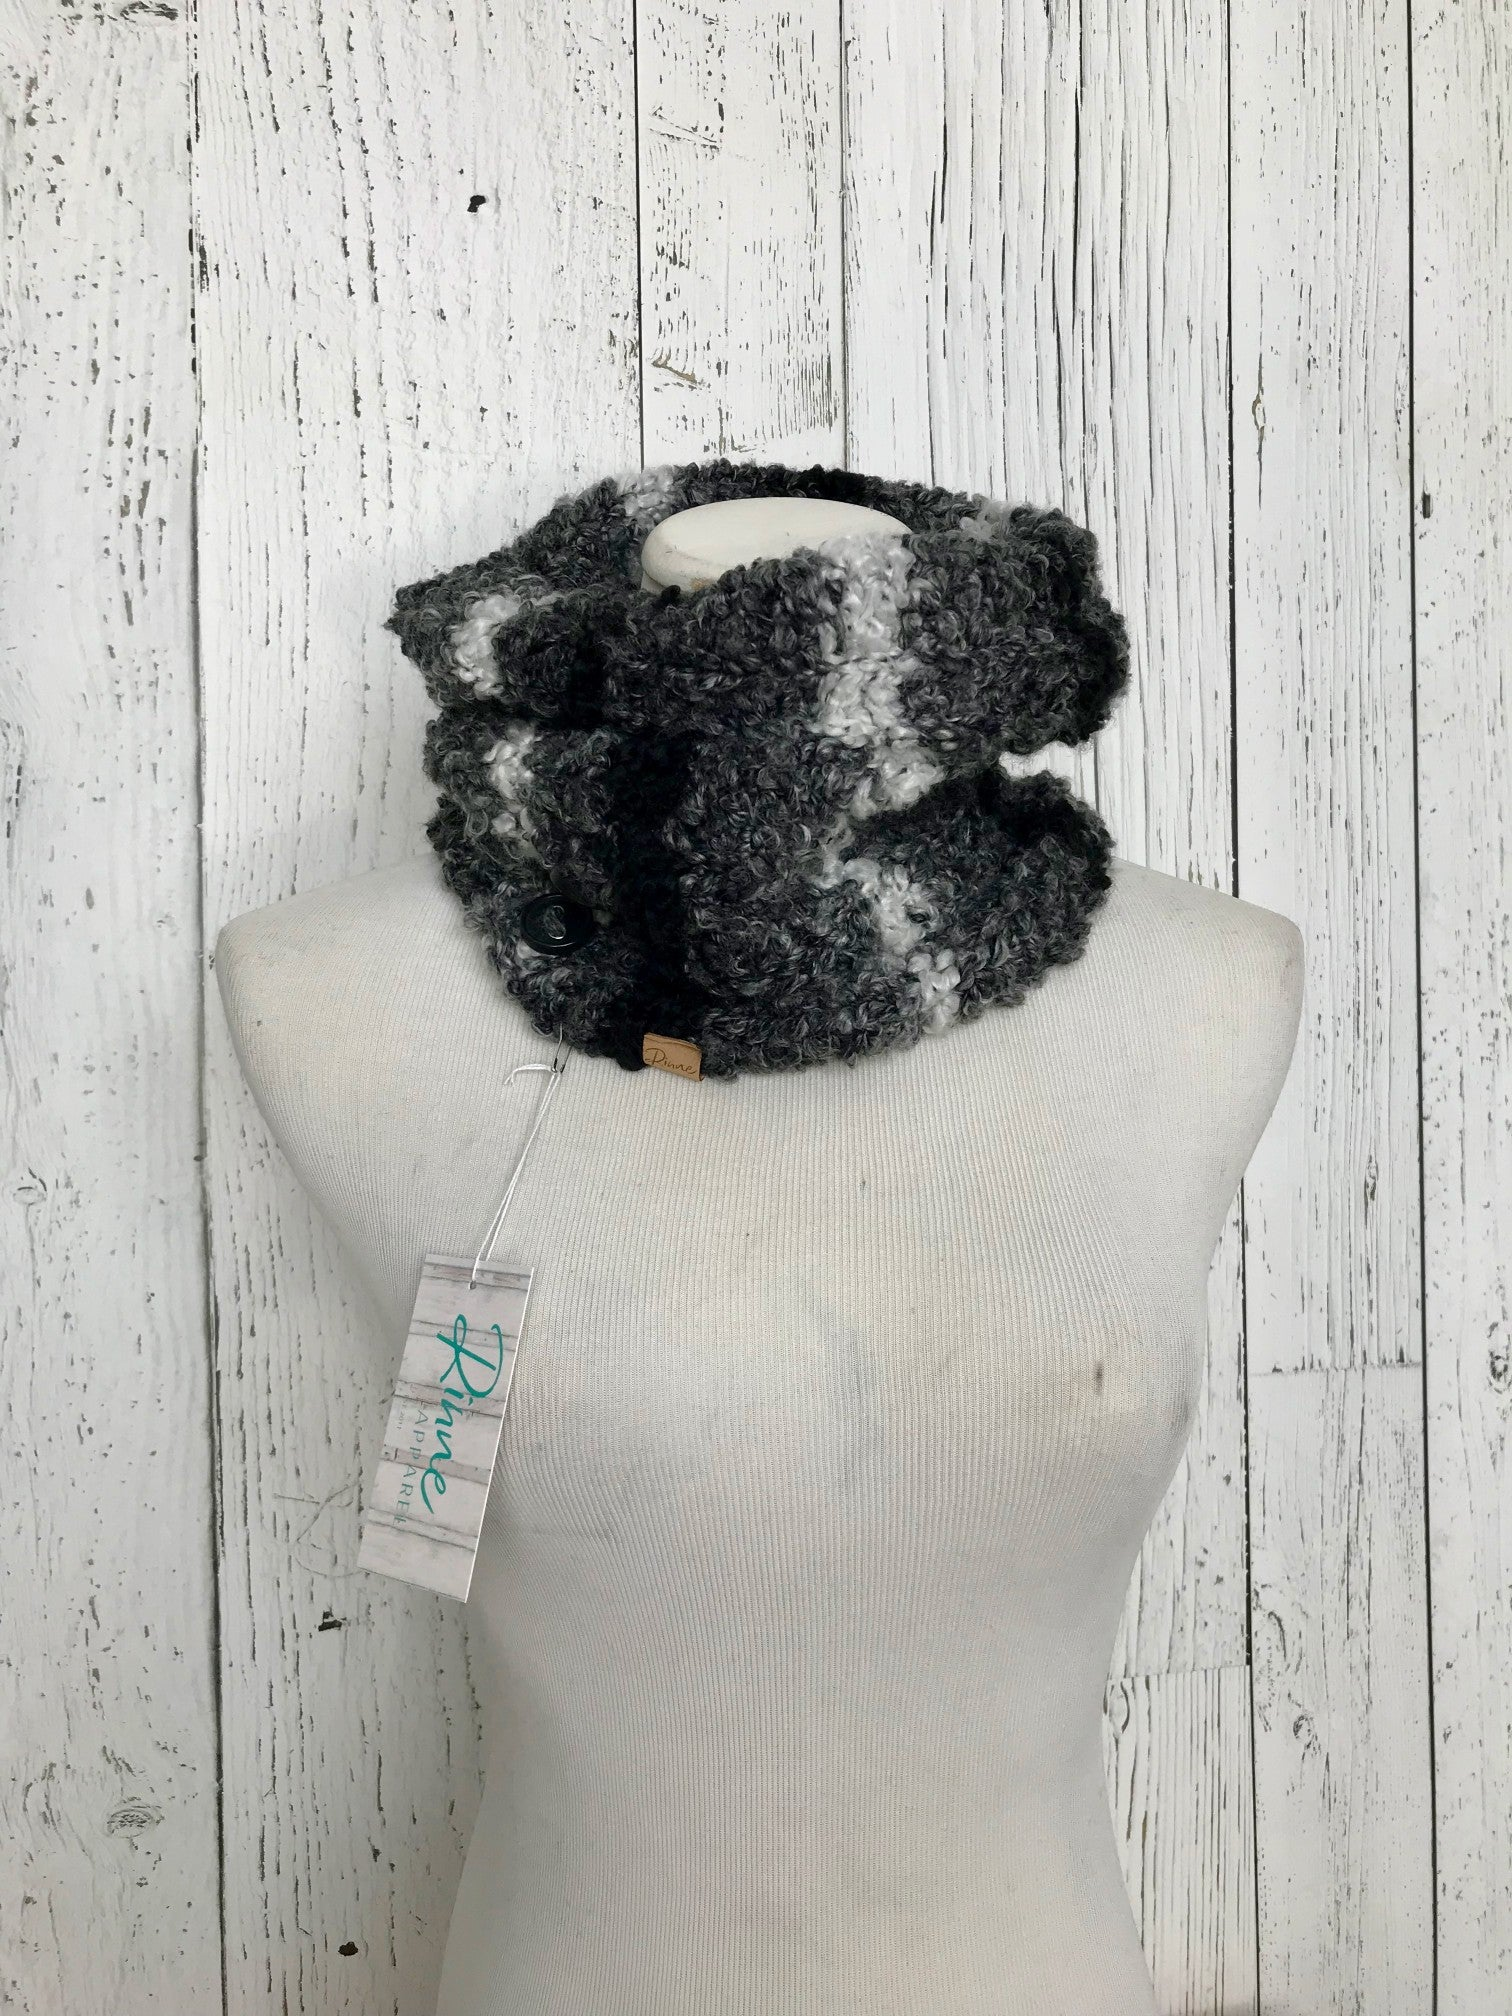 Knit Button Cowl in black, grey, and white stripes